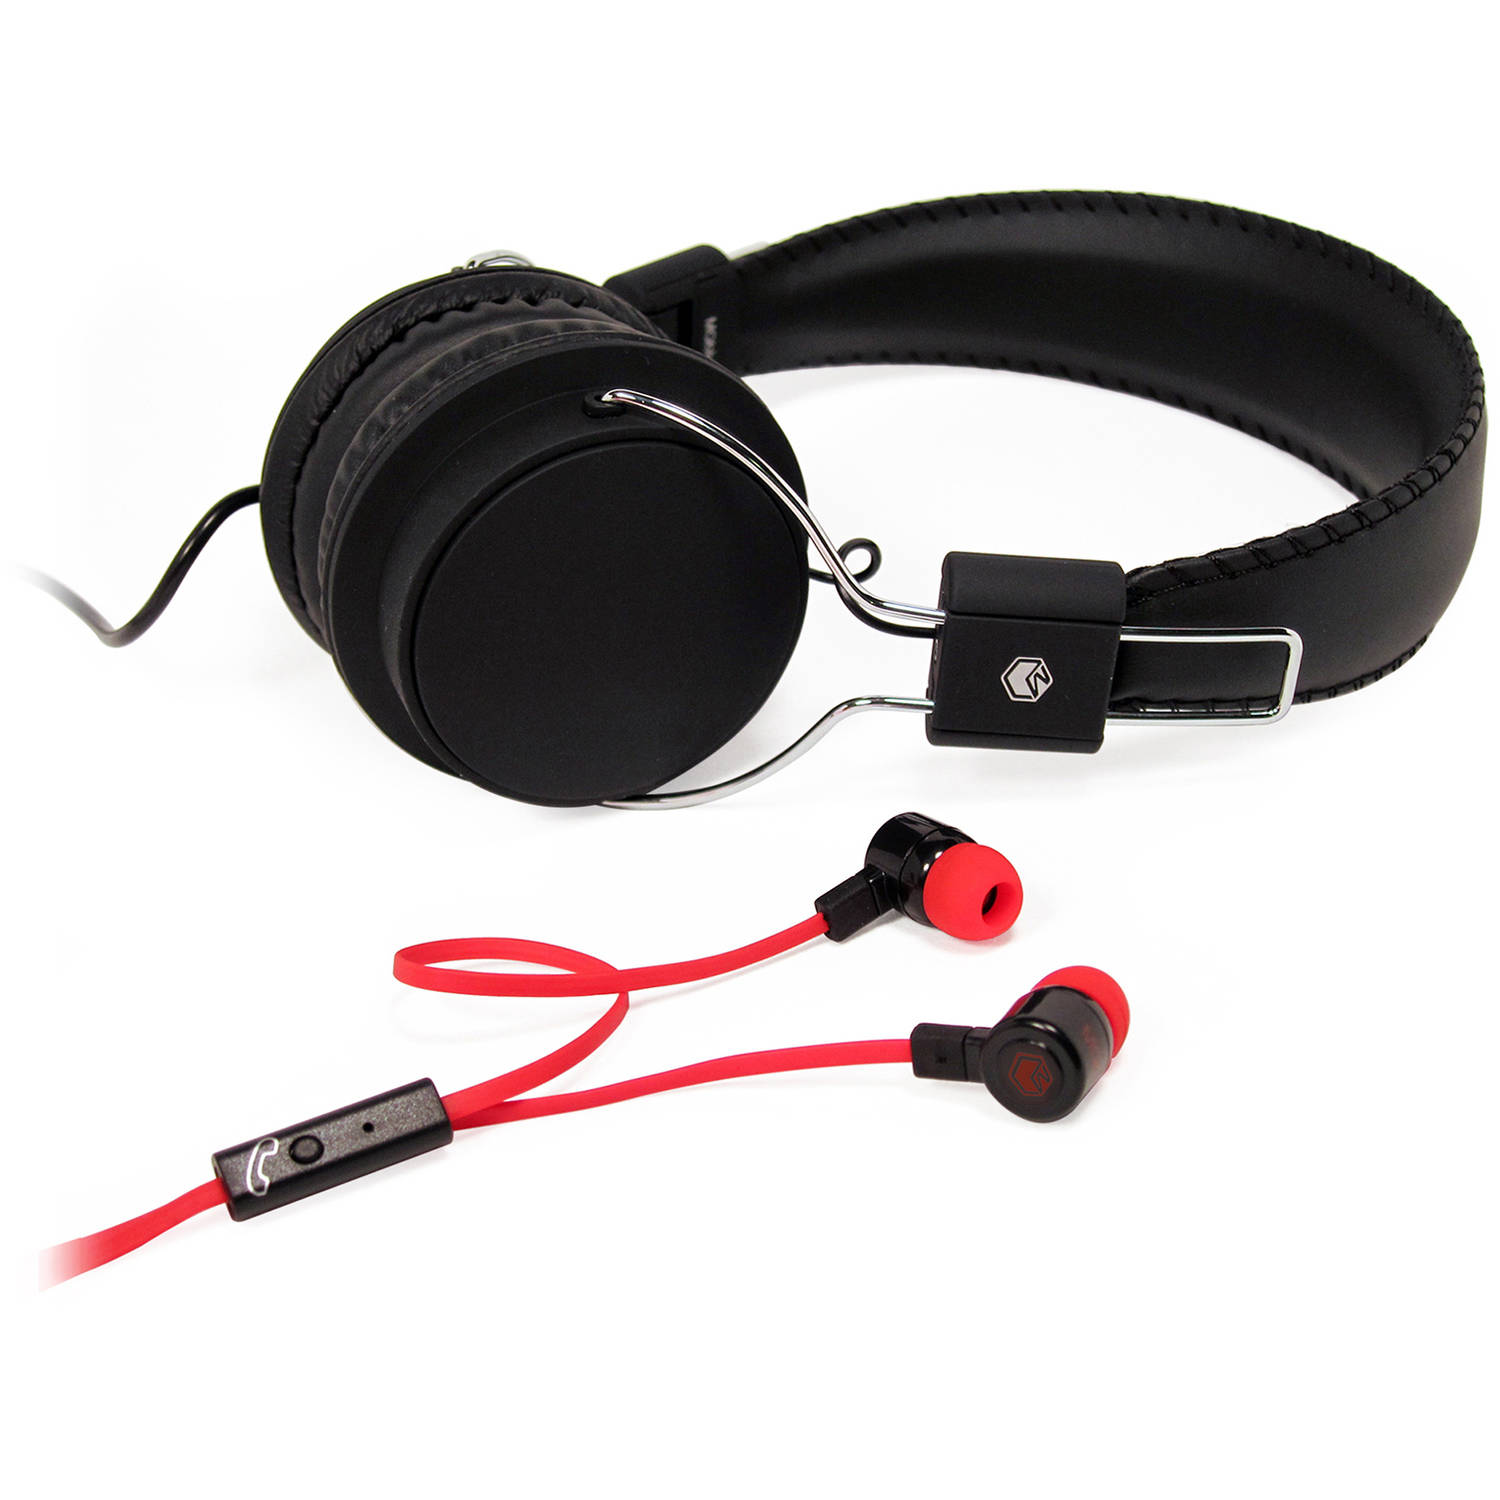 Zip Up Headphones Over Ear And On Ear Headphones Walmartcom